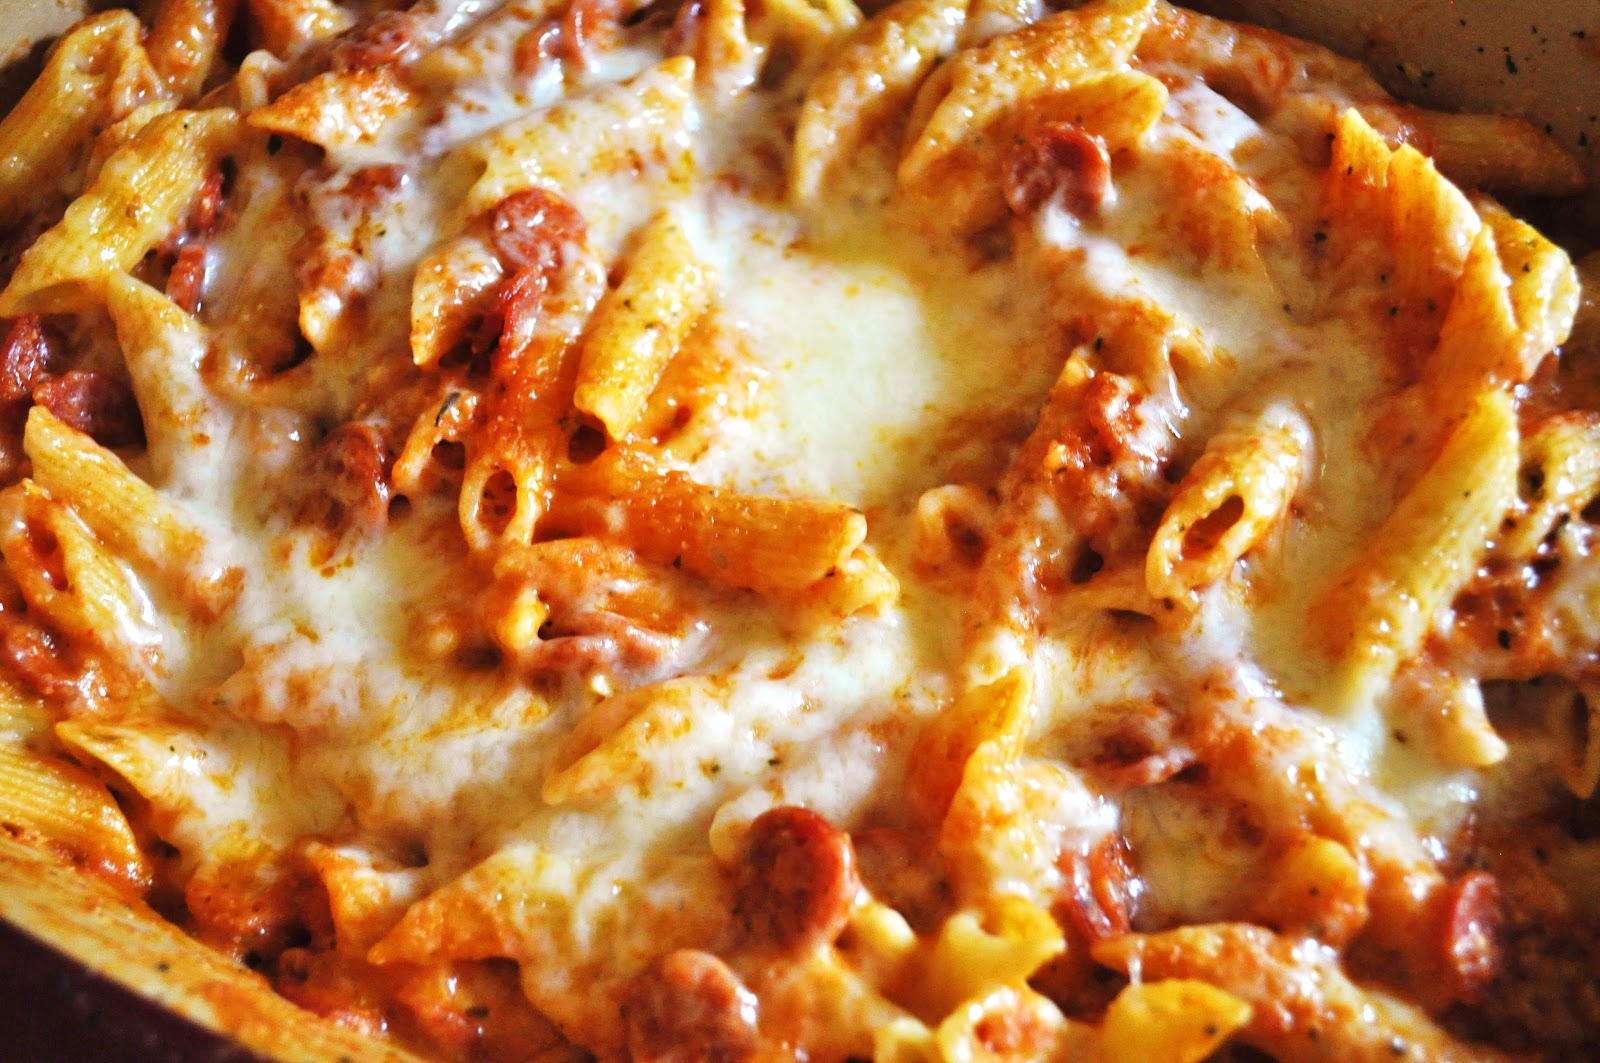 pasta bake 1 lb penne pasta 2 cloves garlic 1 jar of pasta sauce